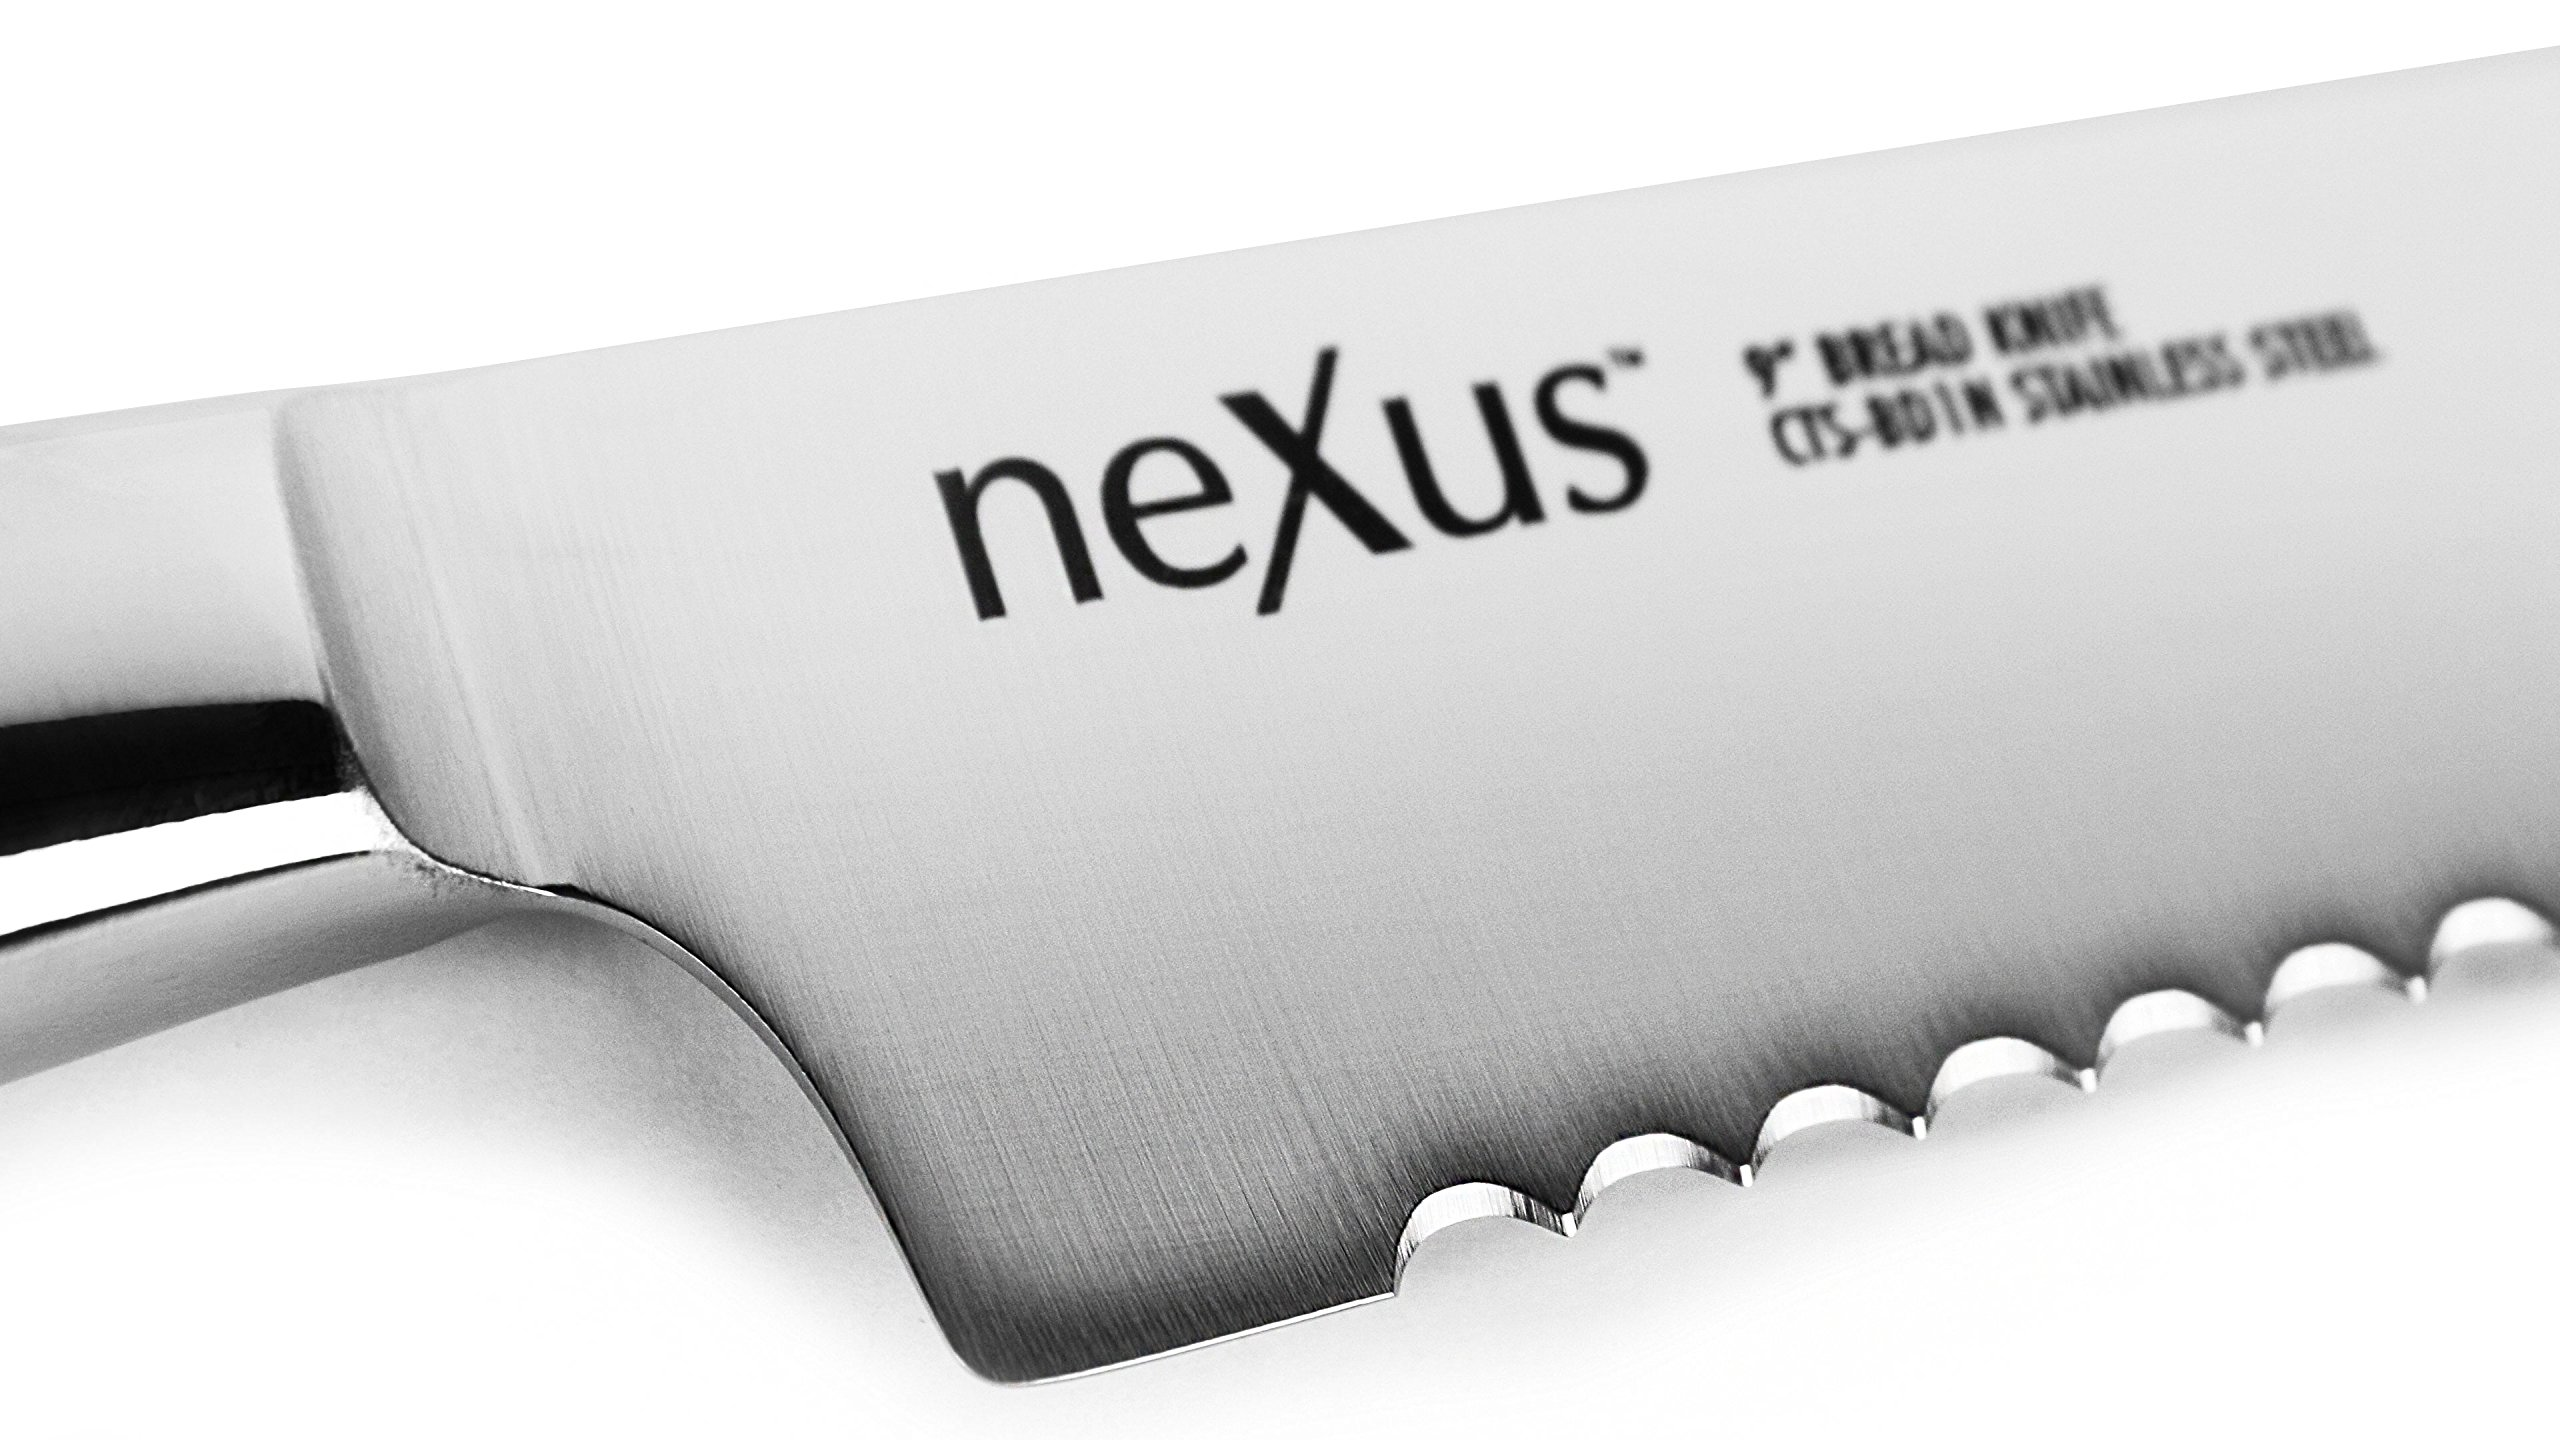 Nexus BD1N 9-inch Bread Knife, 63 Rockwell Hardness, American Stainless Steel with G10 Handle - Serrated Slicing Knife 4 American BD1N Stainless Steel enhanced with Nitrogen allows for high hardness yet a durable edge that will resist chipping and is extremely corrosion resistant; 9-inch blade (14.5-inches overall); Weighs 7.5-ounces (213 grams) 63 Rockwell Hardness for superior edge retention; Pointed serrations make this the perfect knife for crusty loaves of bread; The deep serration edge is designed to last for decades of use Indestructible G10 handle with stainless steel rivets; Full tang construction